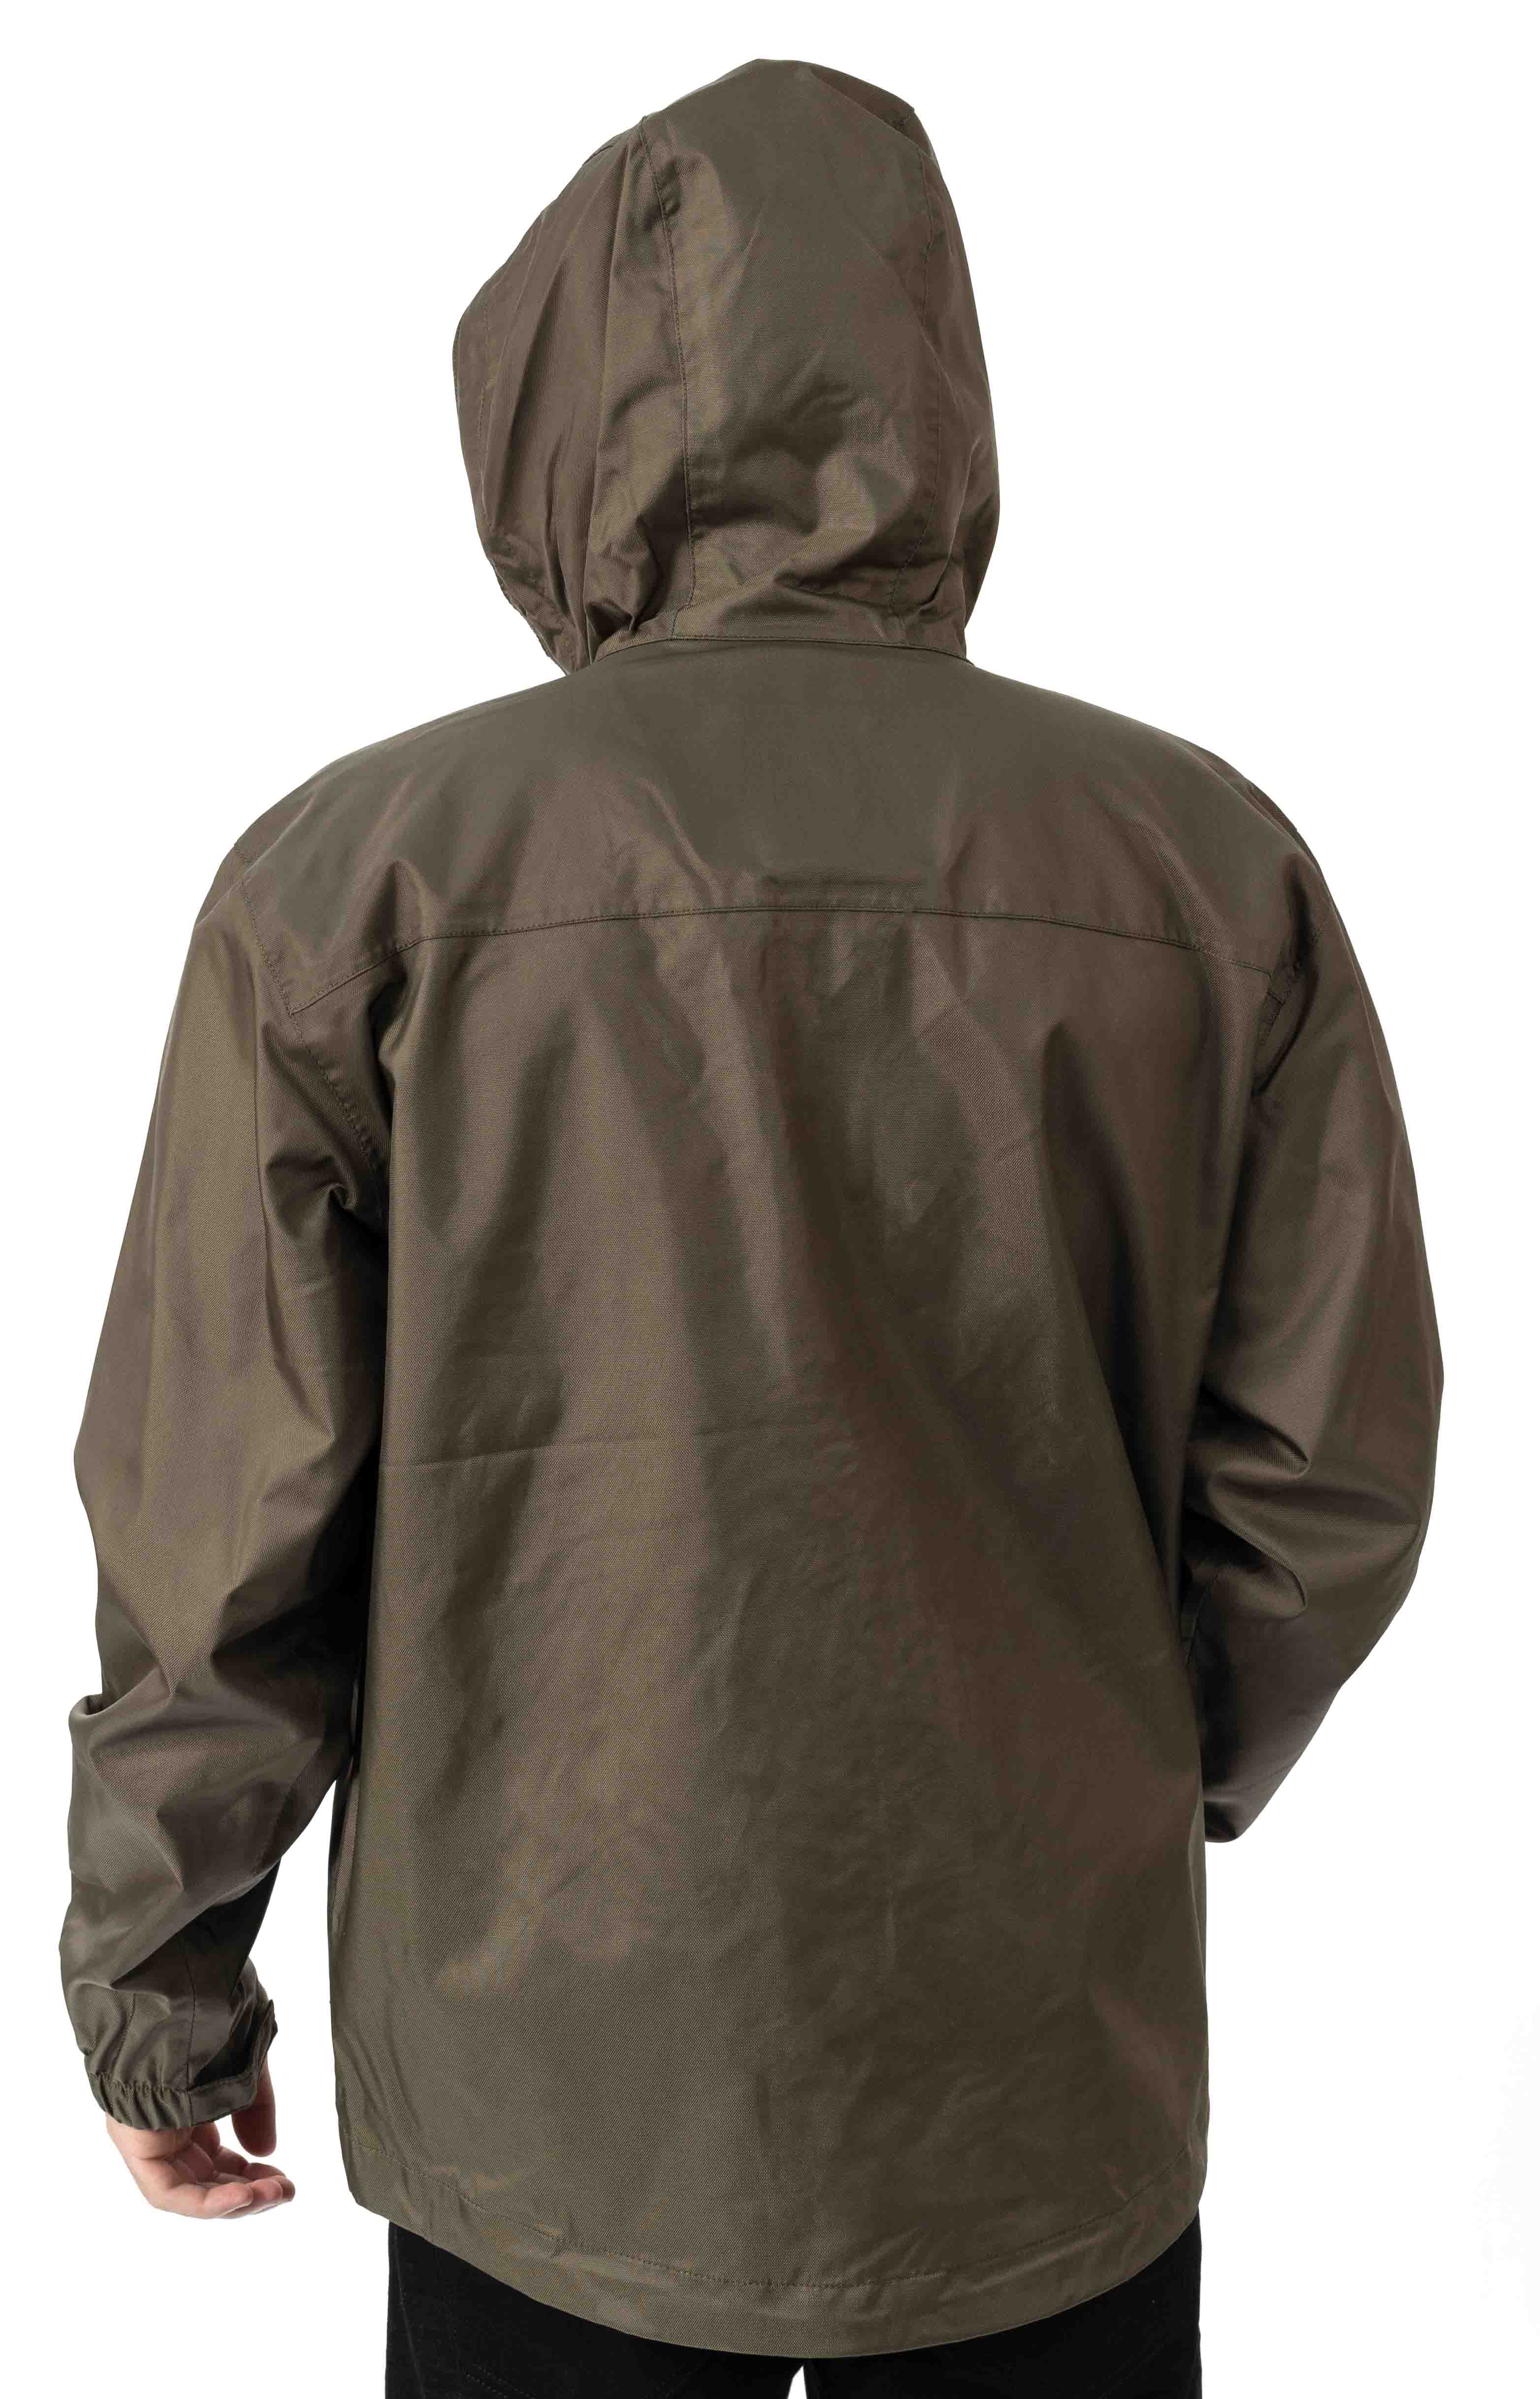 (103510) Dry Harbor Waterproof Breathable Jacket - Tarmac  3